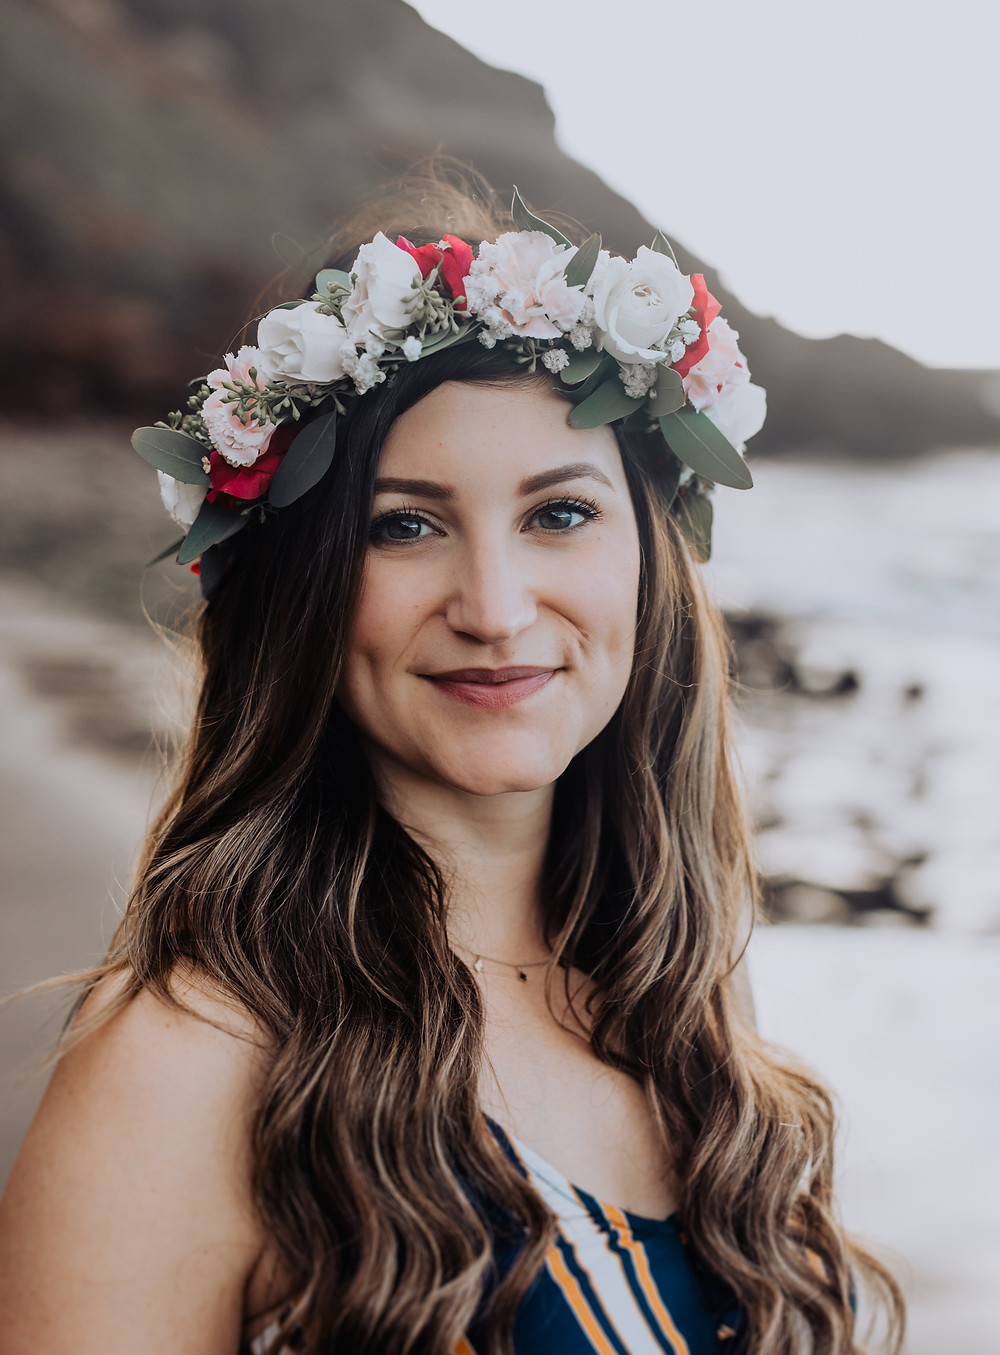 A girl smiles at the camera with a flower lei in her hair.